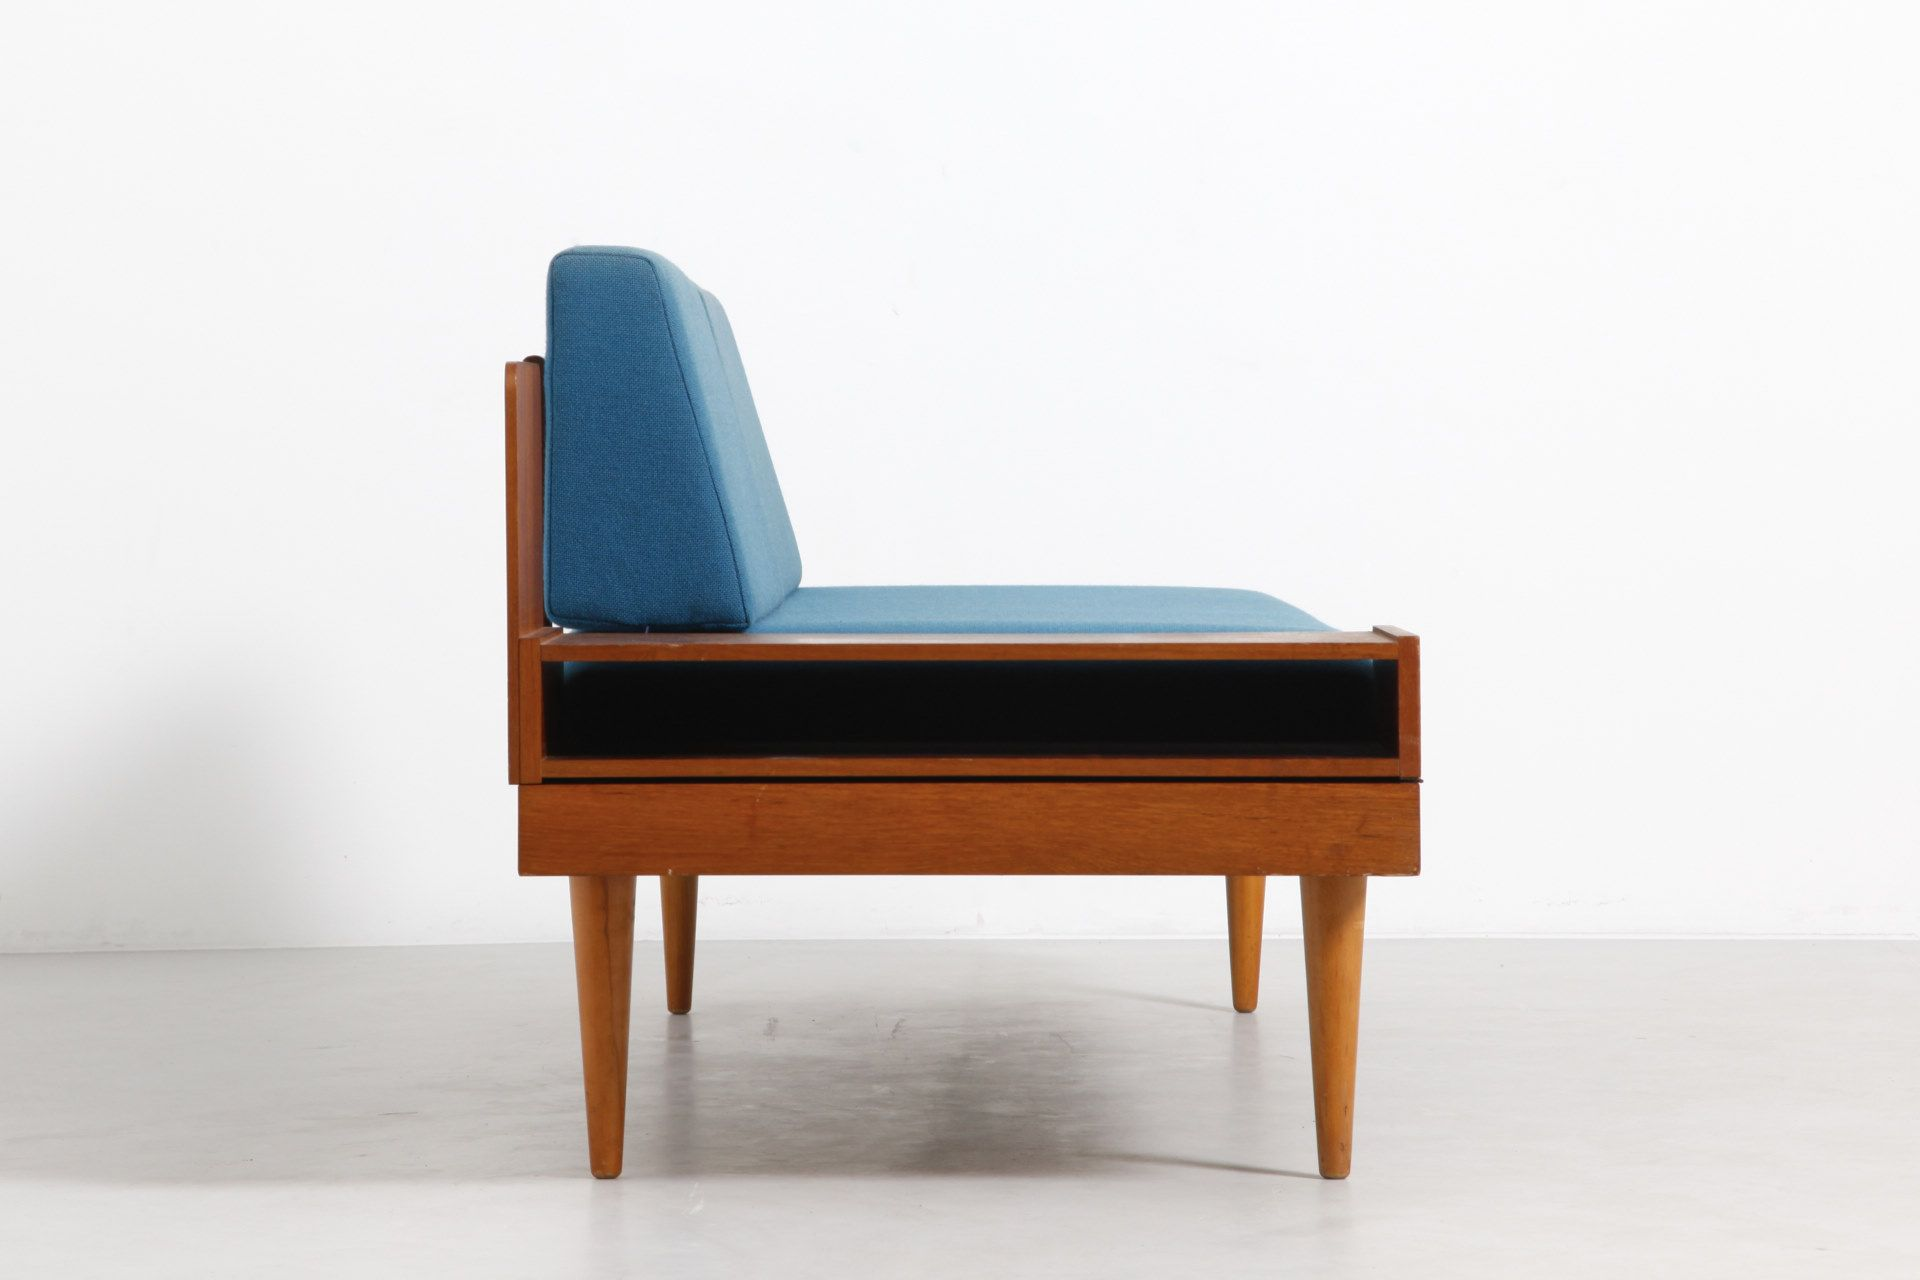 Sold Teak daybed with original blue coushions. Perfect condition. Produced by Hove Møbler in Norway.